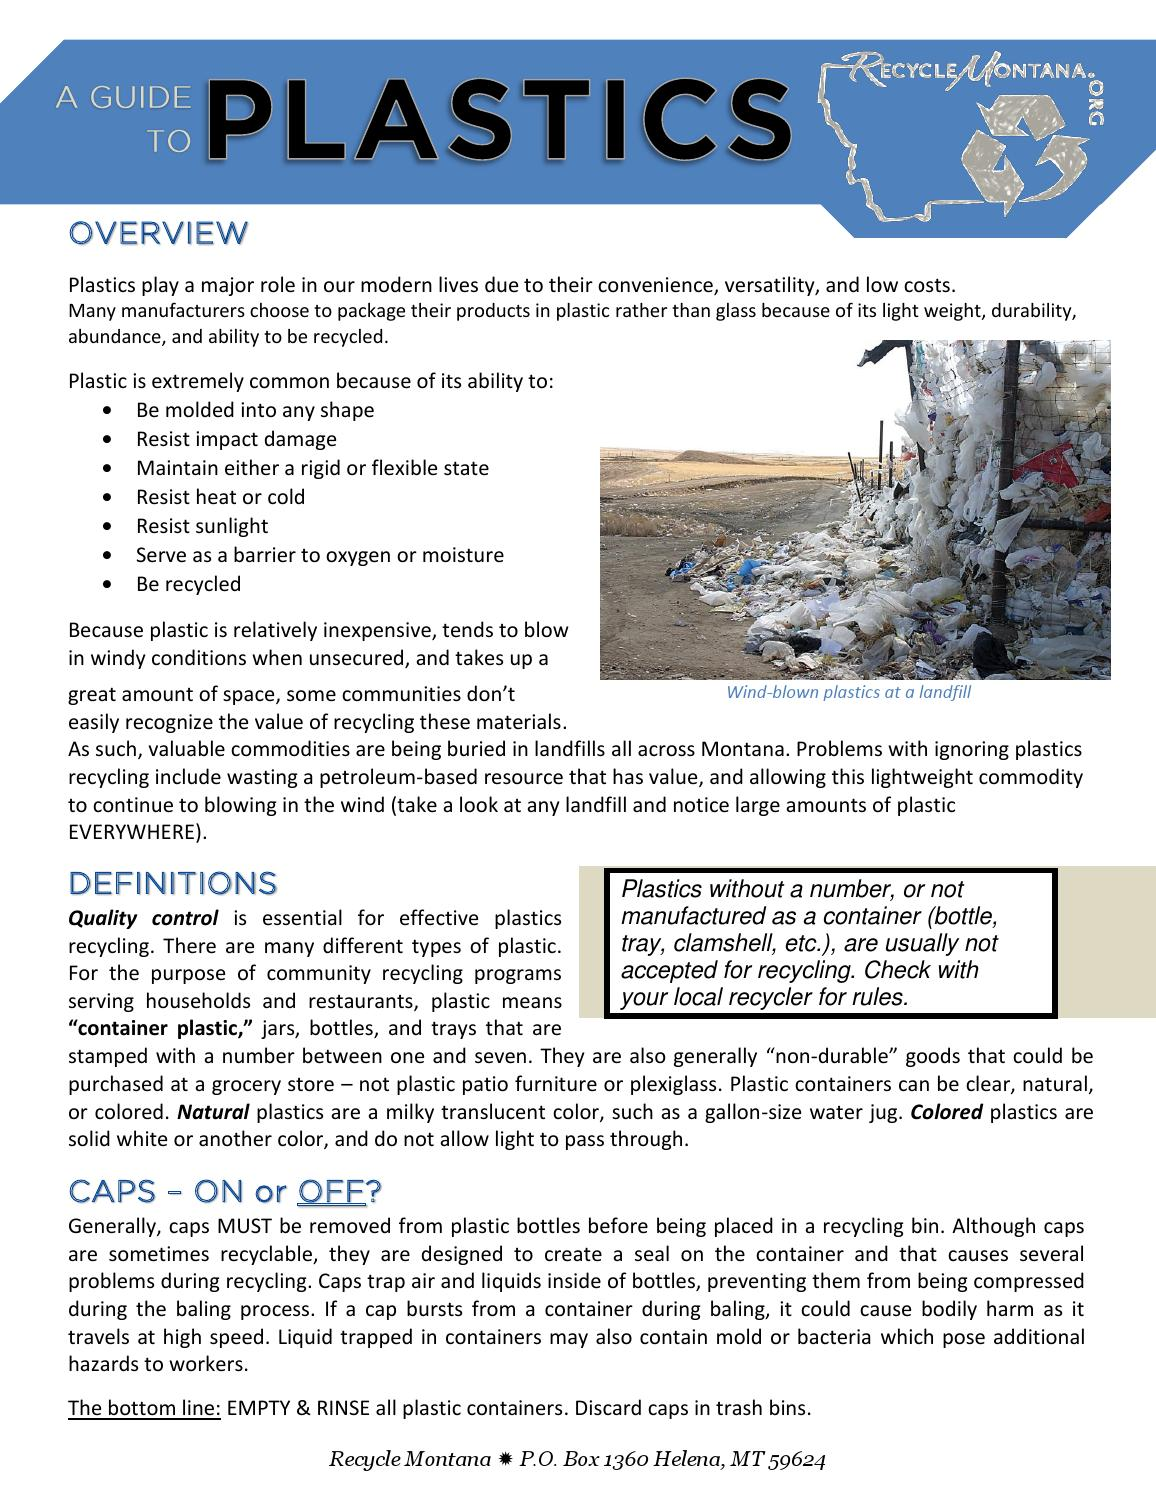 A guide to recycling plastics in montana by recycle montana issuu biocorpaavc Choice Image